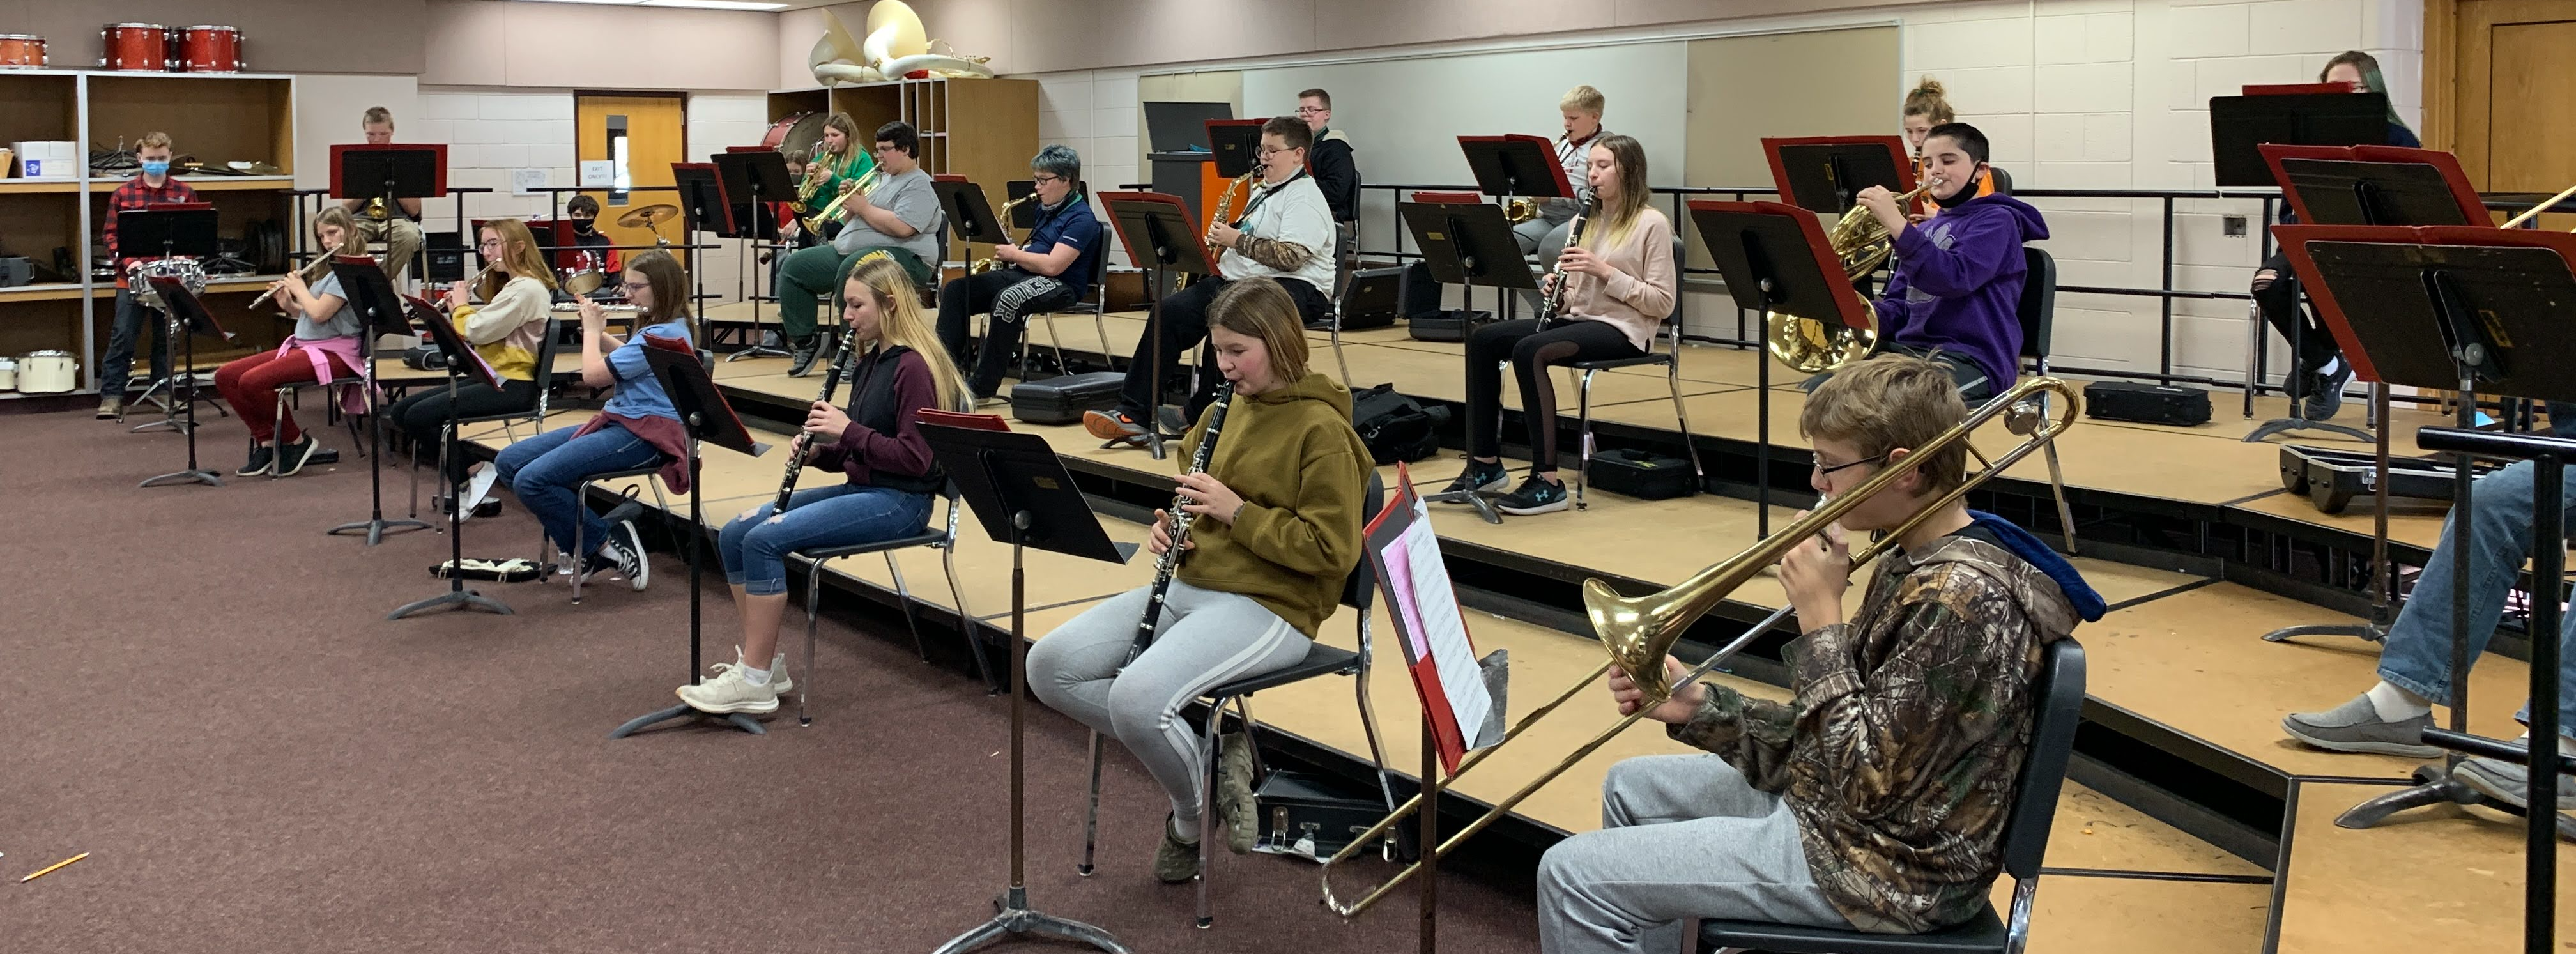 Band students playing instruments in classroom